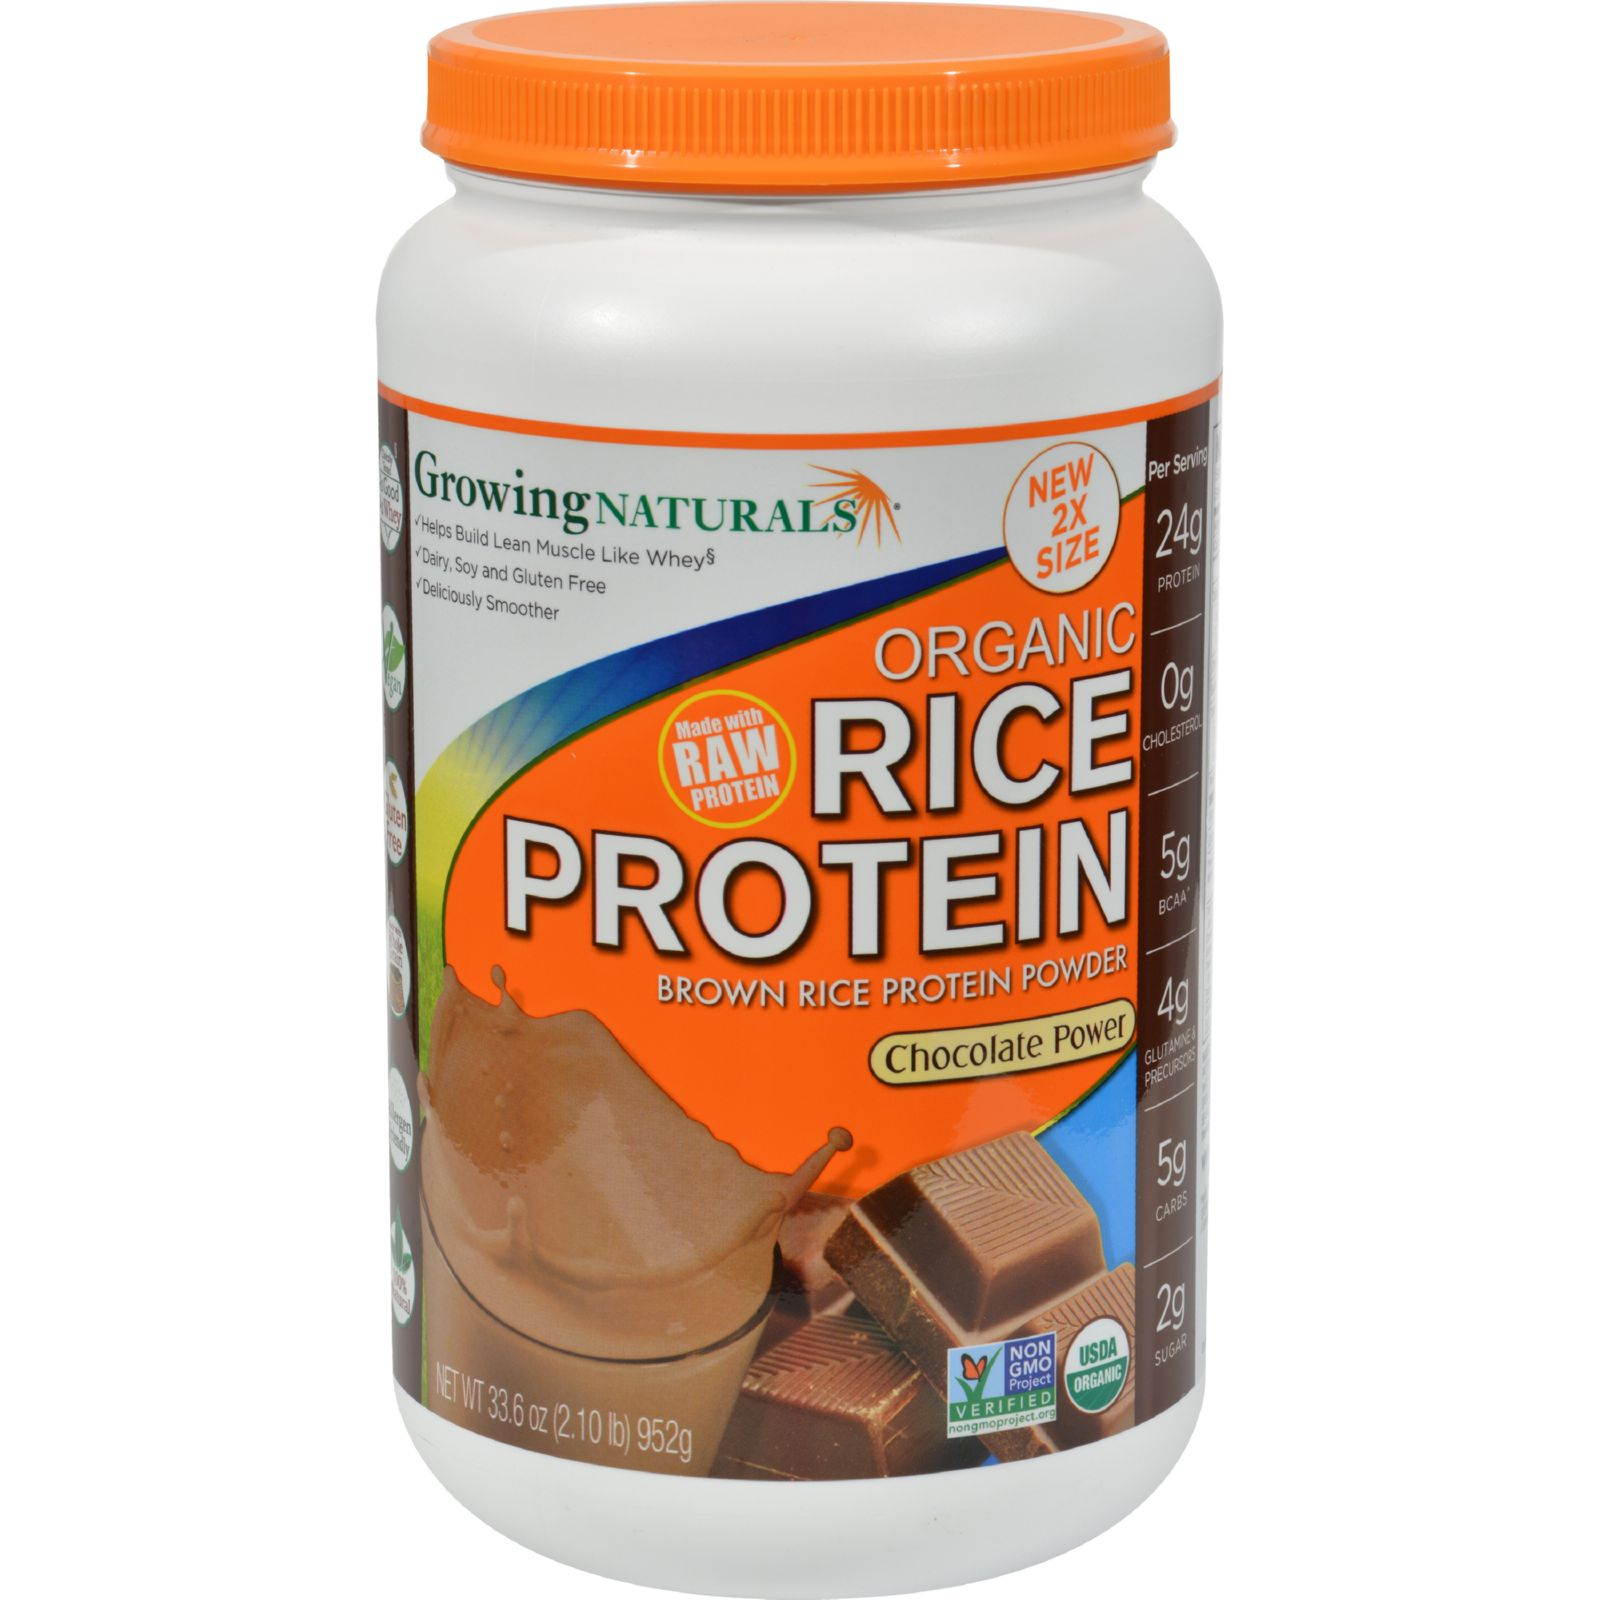 Growing Naturals Rice Protein Powder - Chocolate Power - 33.6 Oz